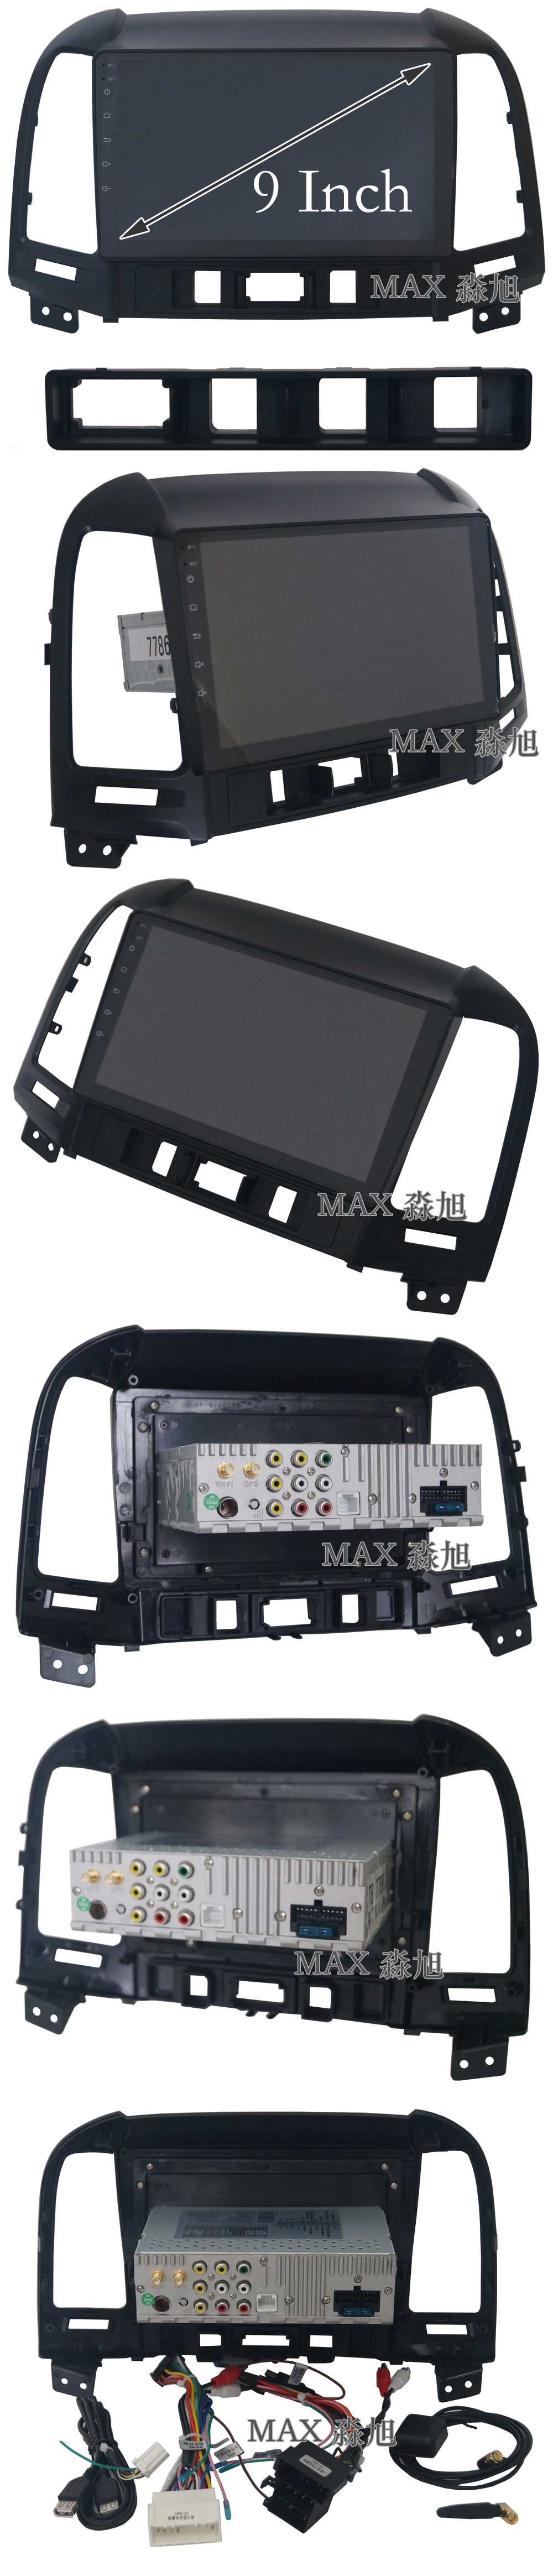 Flash Deal MAX Android 8.1 2G 32G 8 Core Car DVD Player for Hyundai santa fe 3/4holes with 2.5D+IPS Screen car stereo radio RDS Maps swc 1